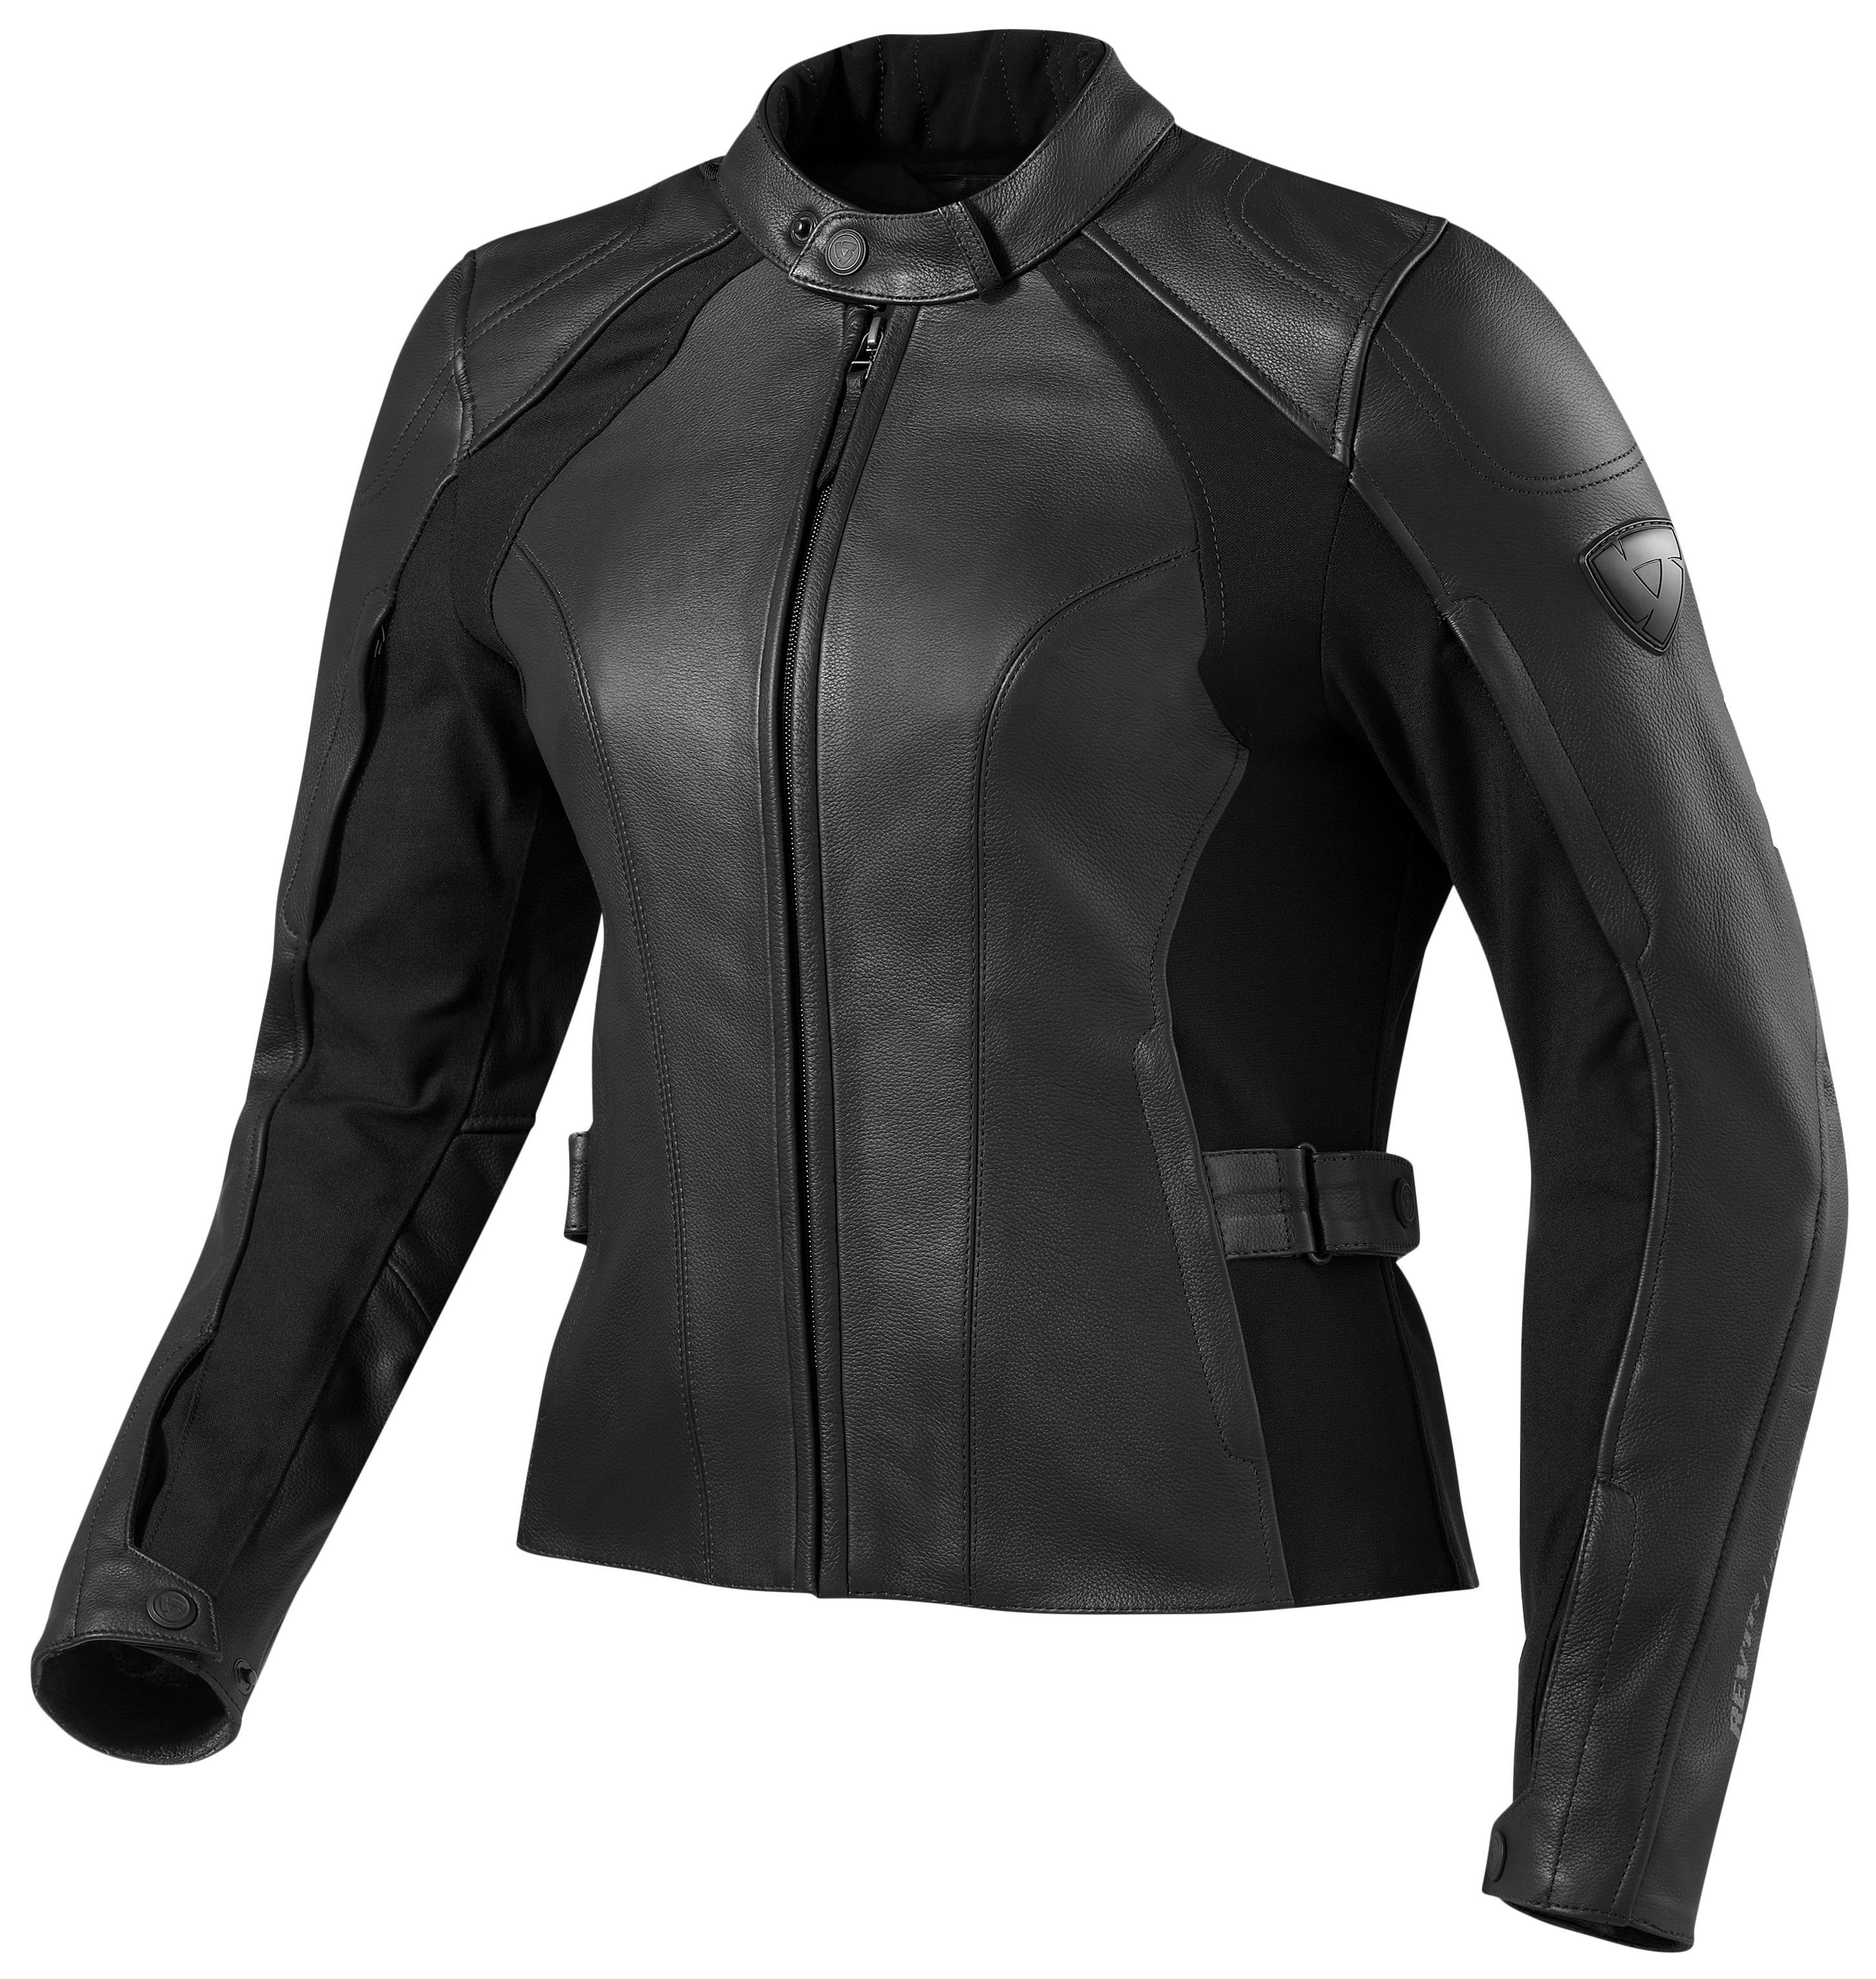 Beautiful Busan Cowhide Leather Gives The Allure Evo Jacket It An Elegant Look While The Jackets For Women Motorcycle Jacket Women Womens Black Leather Jacket